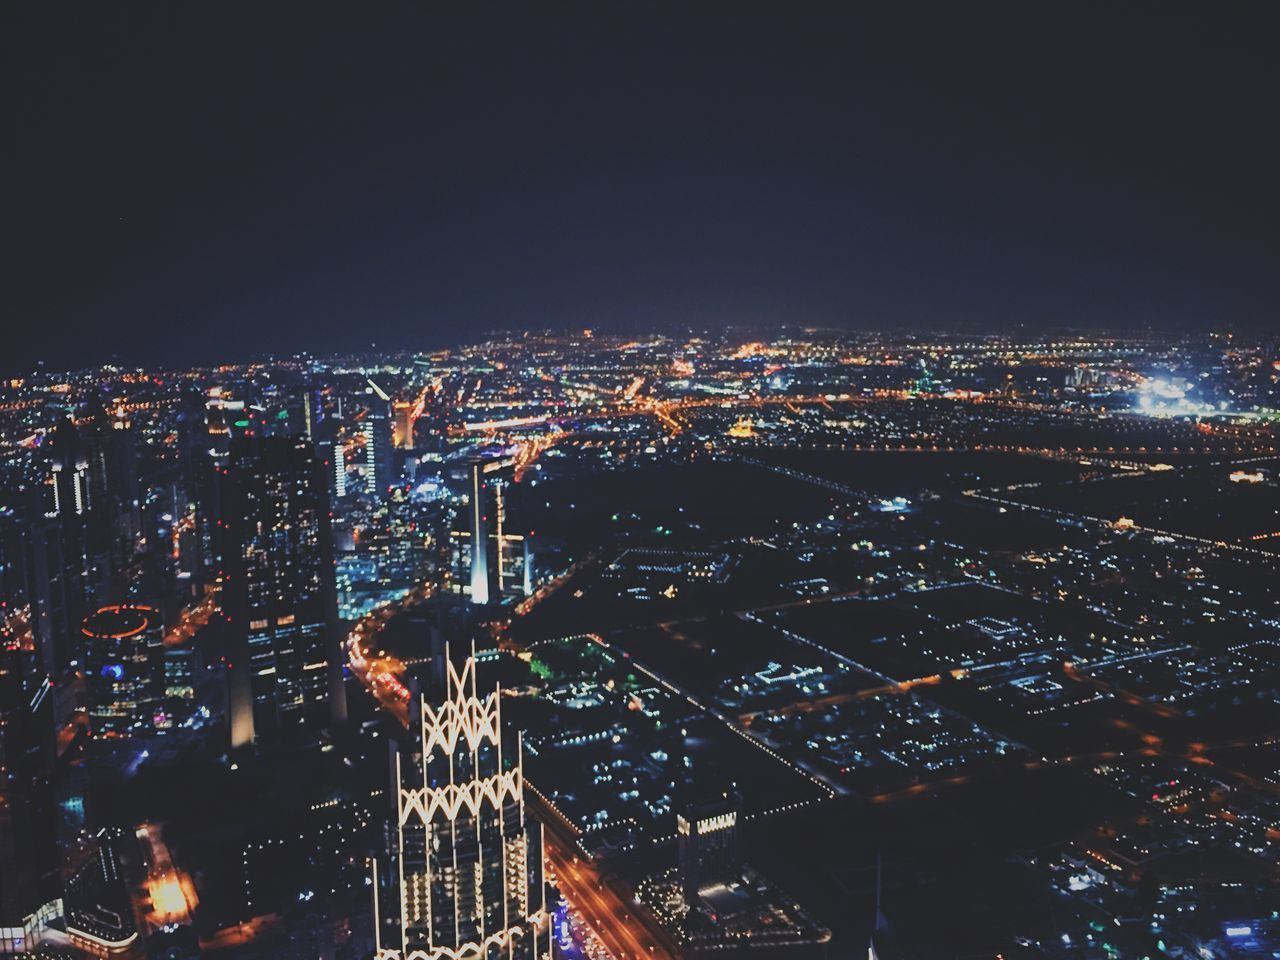 night, cityscape, illuminated, city, architecture, building exterior, no people, built structure, outdoors, skyscraper, modern, sky